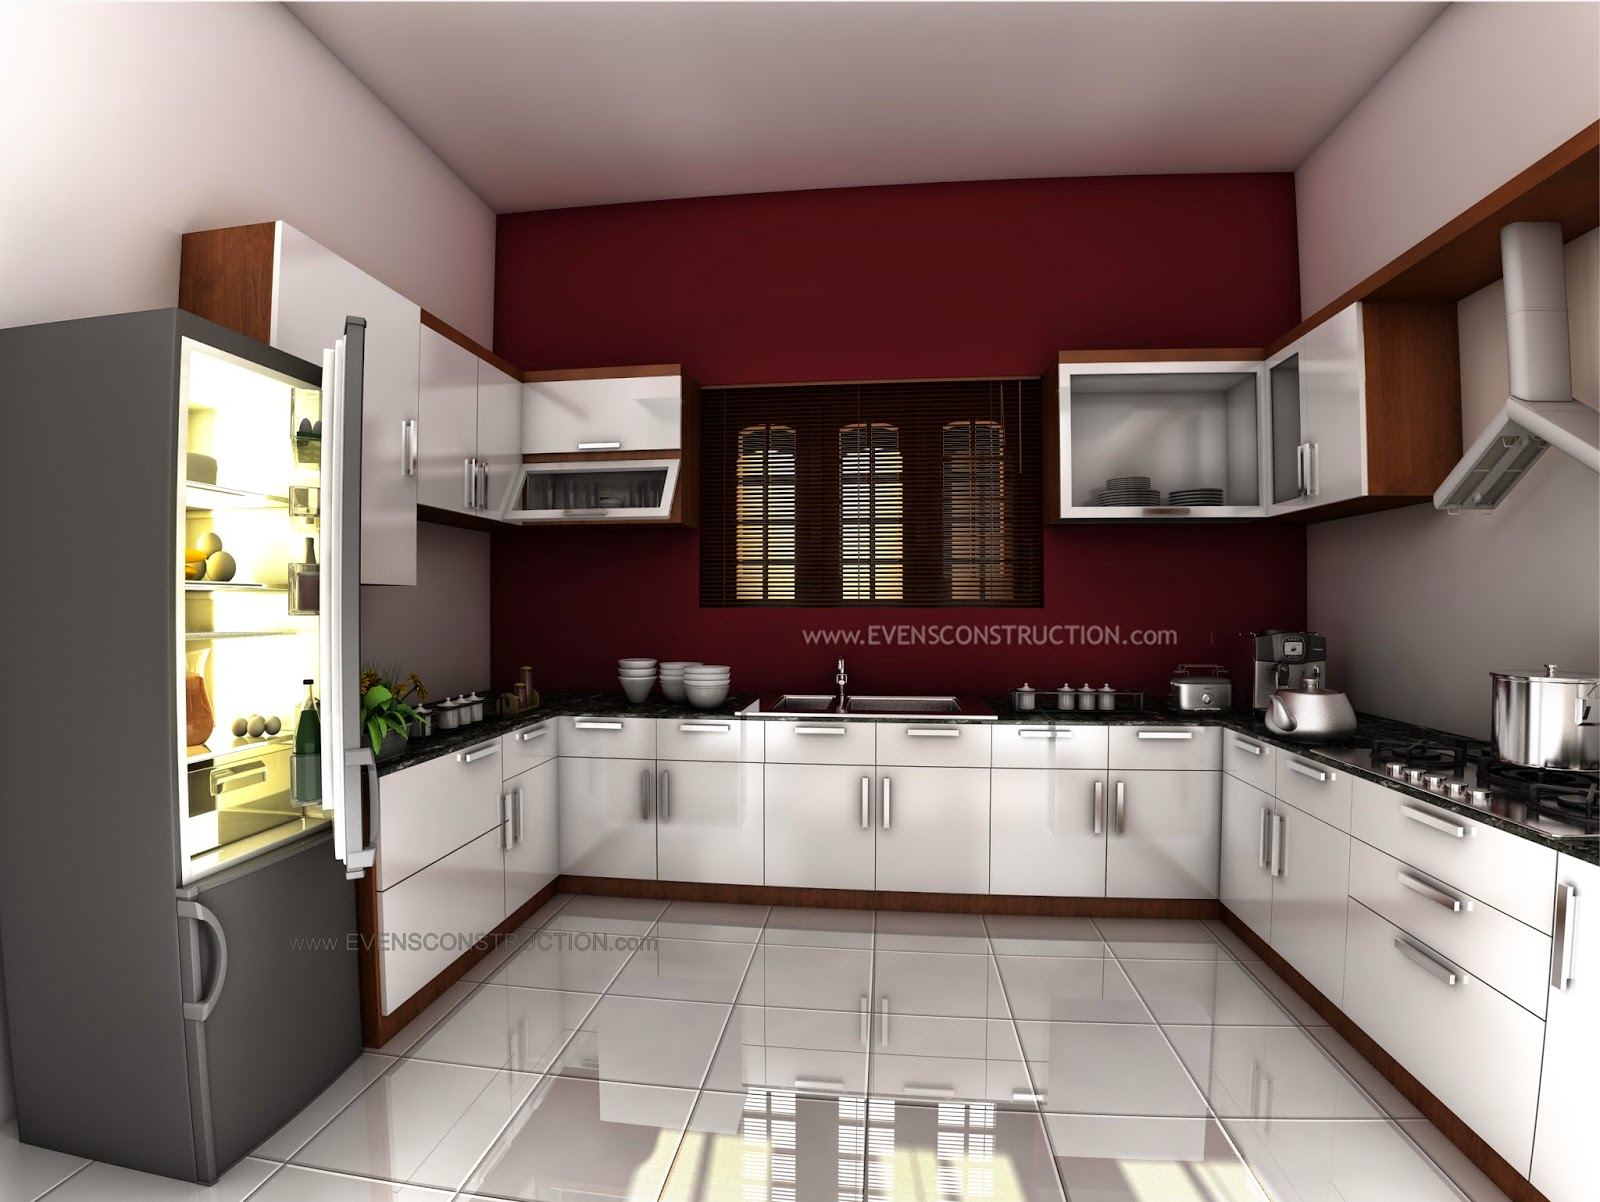 Evens construction pvt ltd beautiful kerala kitchen for Interior design for kitchen in kerala